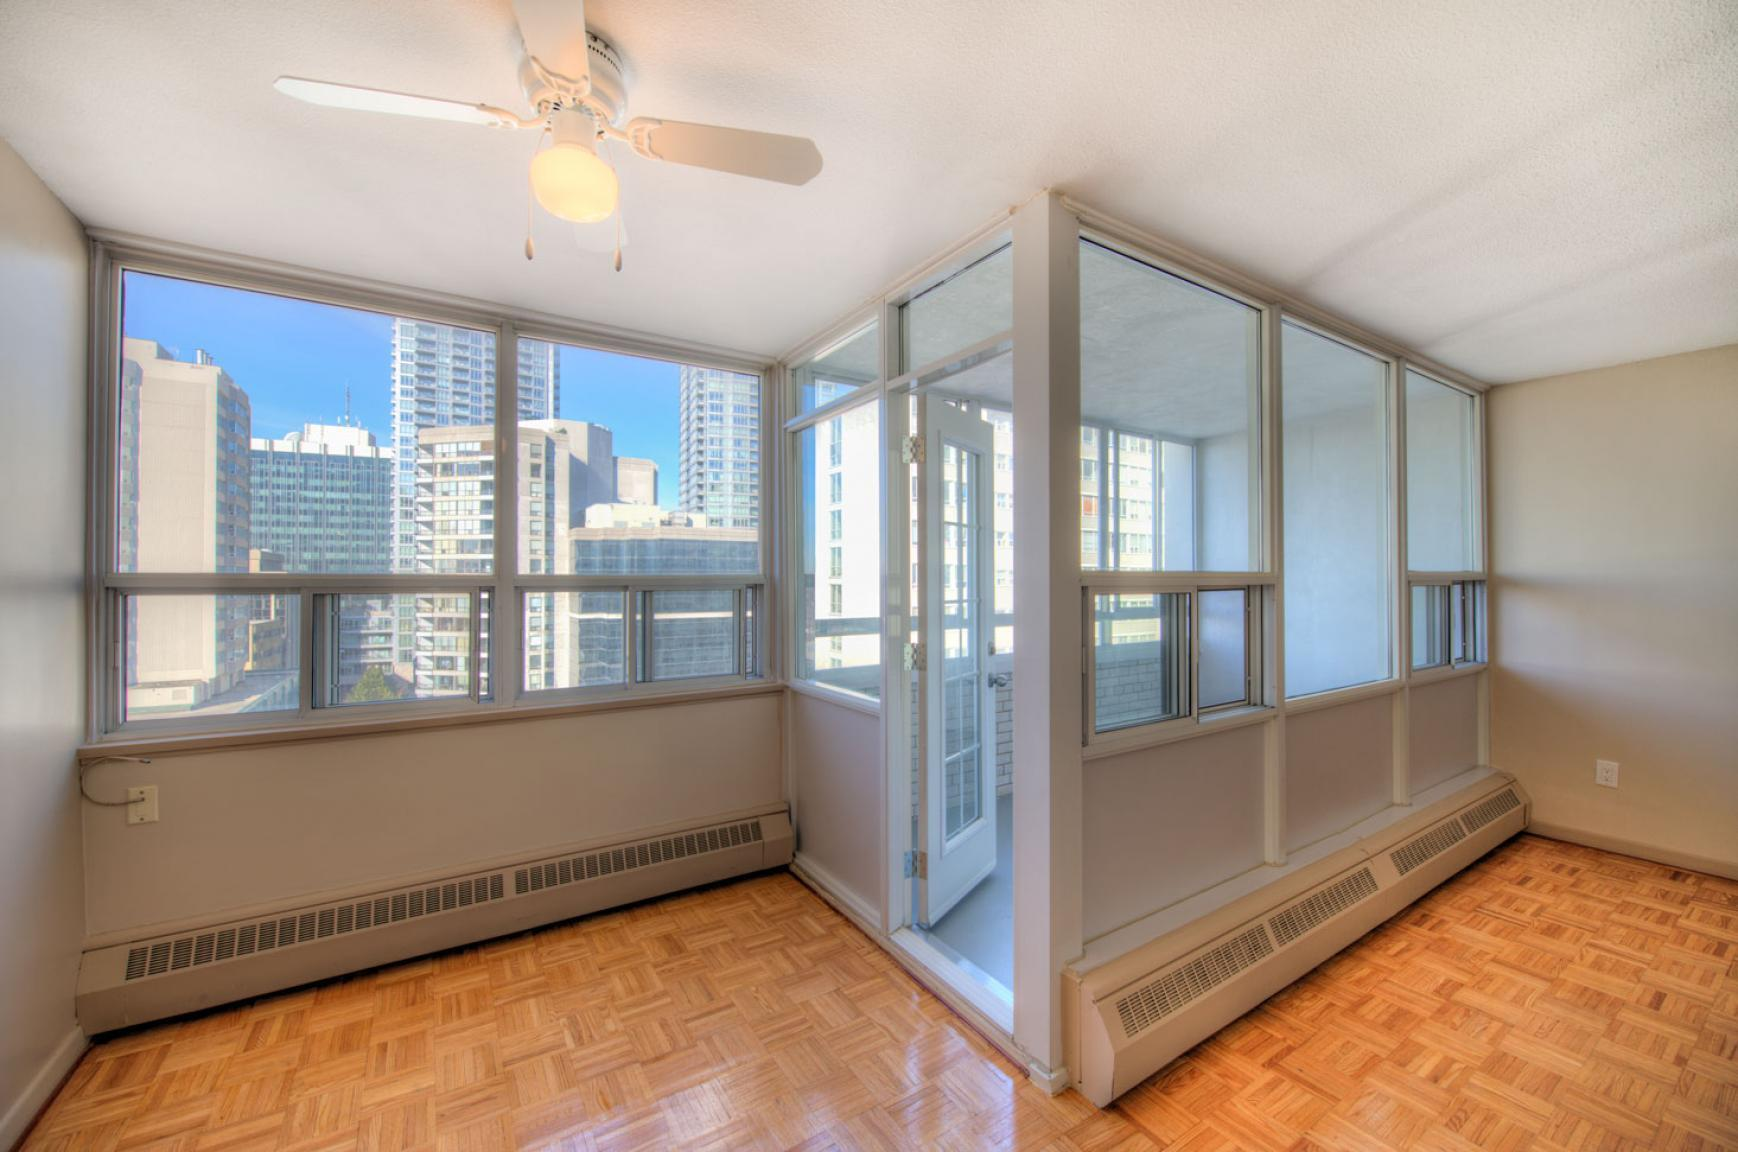 Bedroom Apartment For Rent Yonge And Eglinton